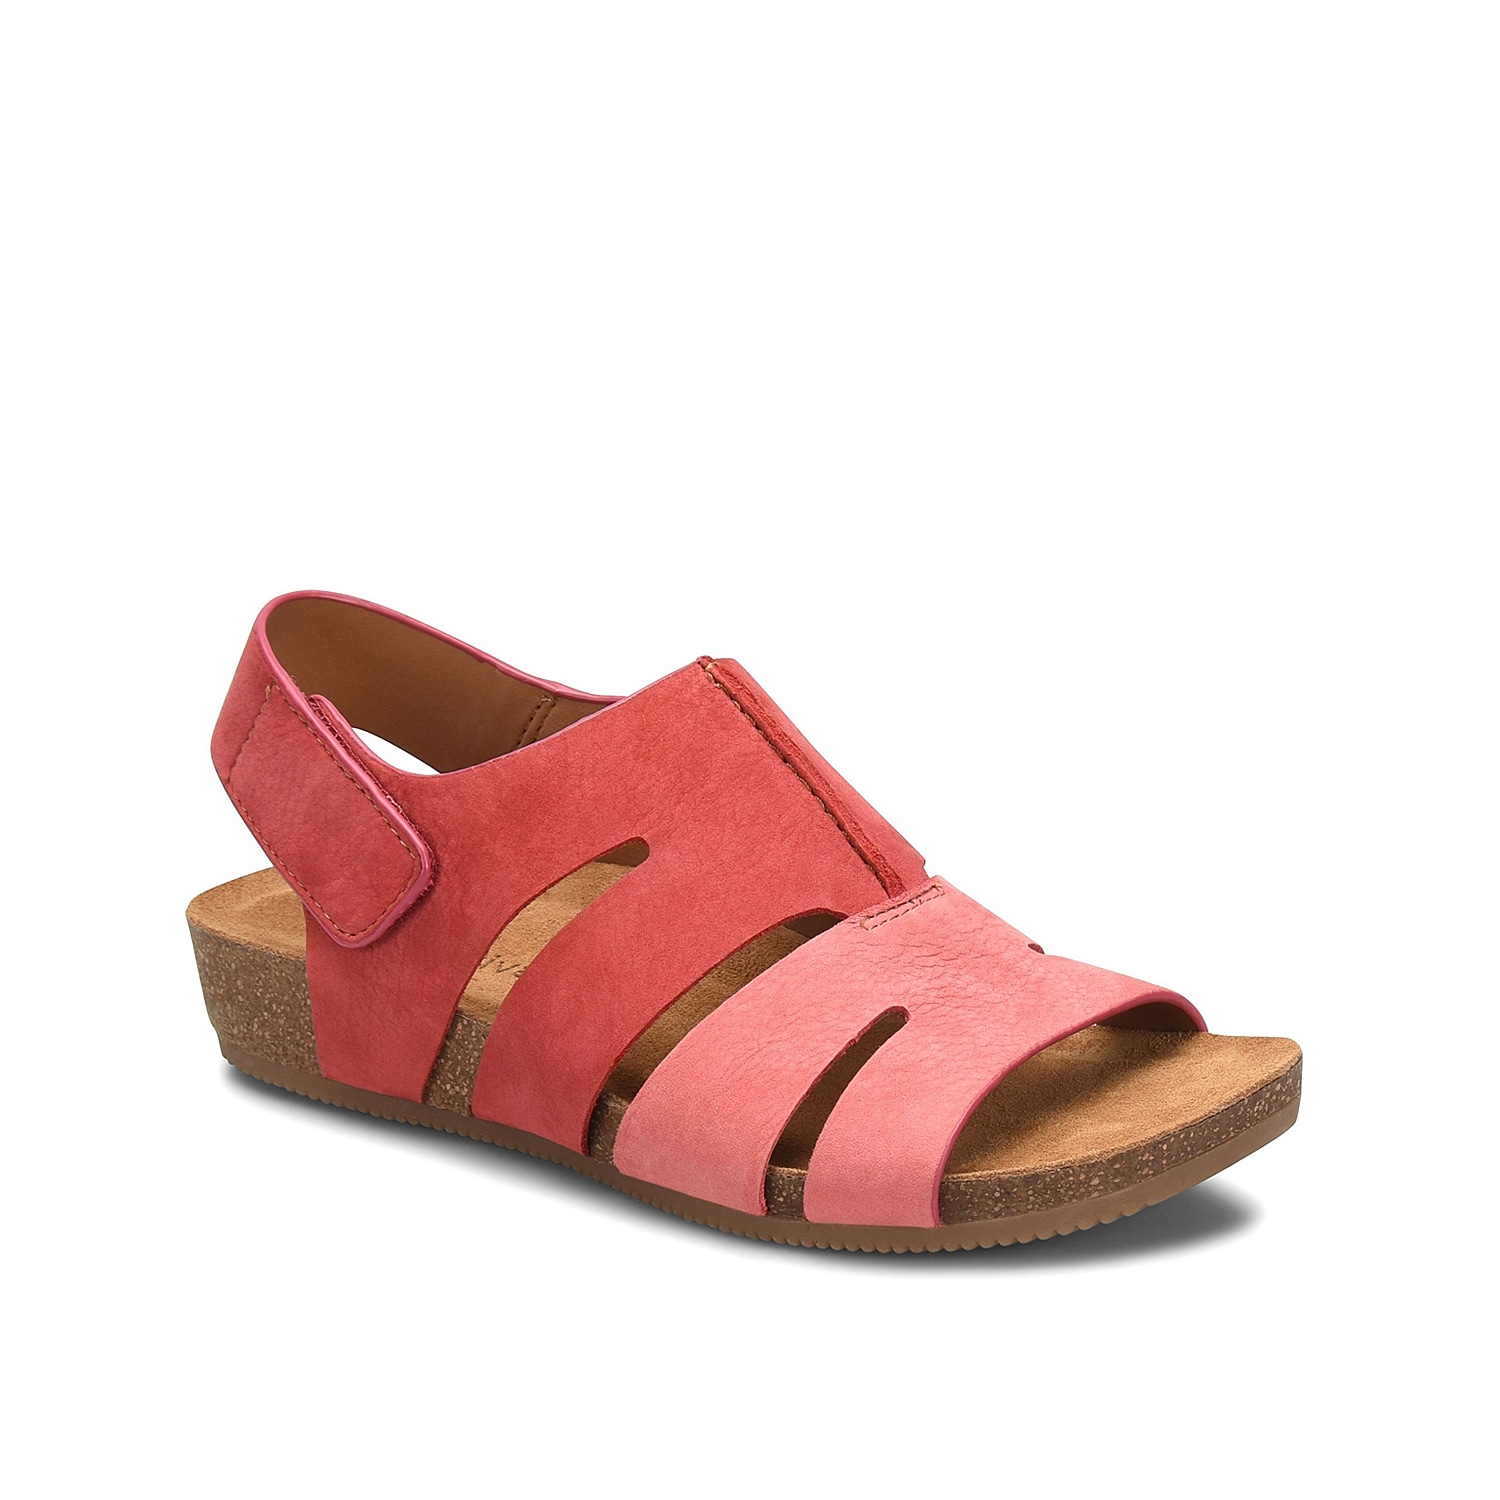 The Gayle wedge sandal from Comfortiva will add maximum appeal to your shoe collection. The Pillowtop®footbed provides extra cushioning with each step you take!